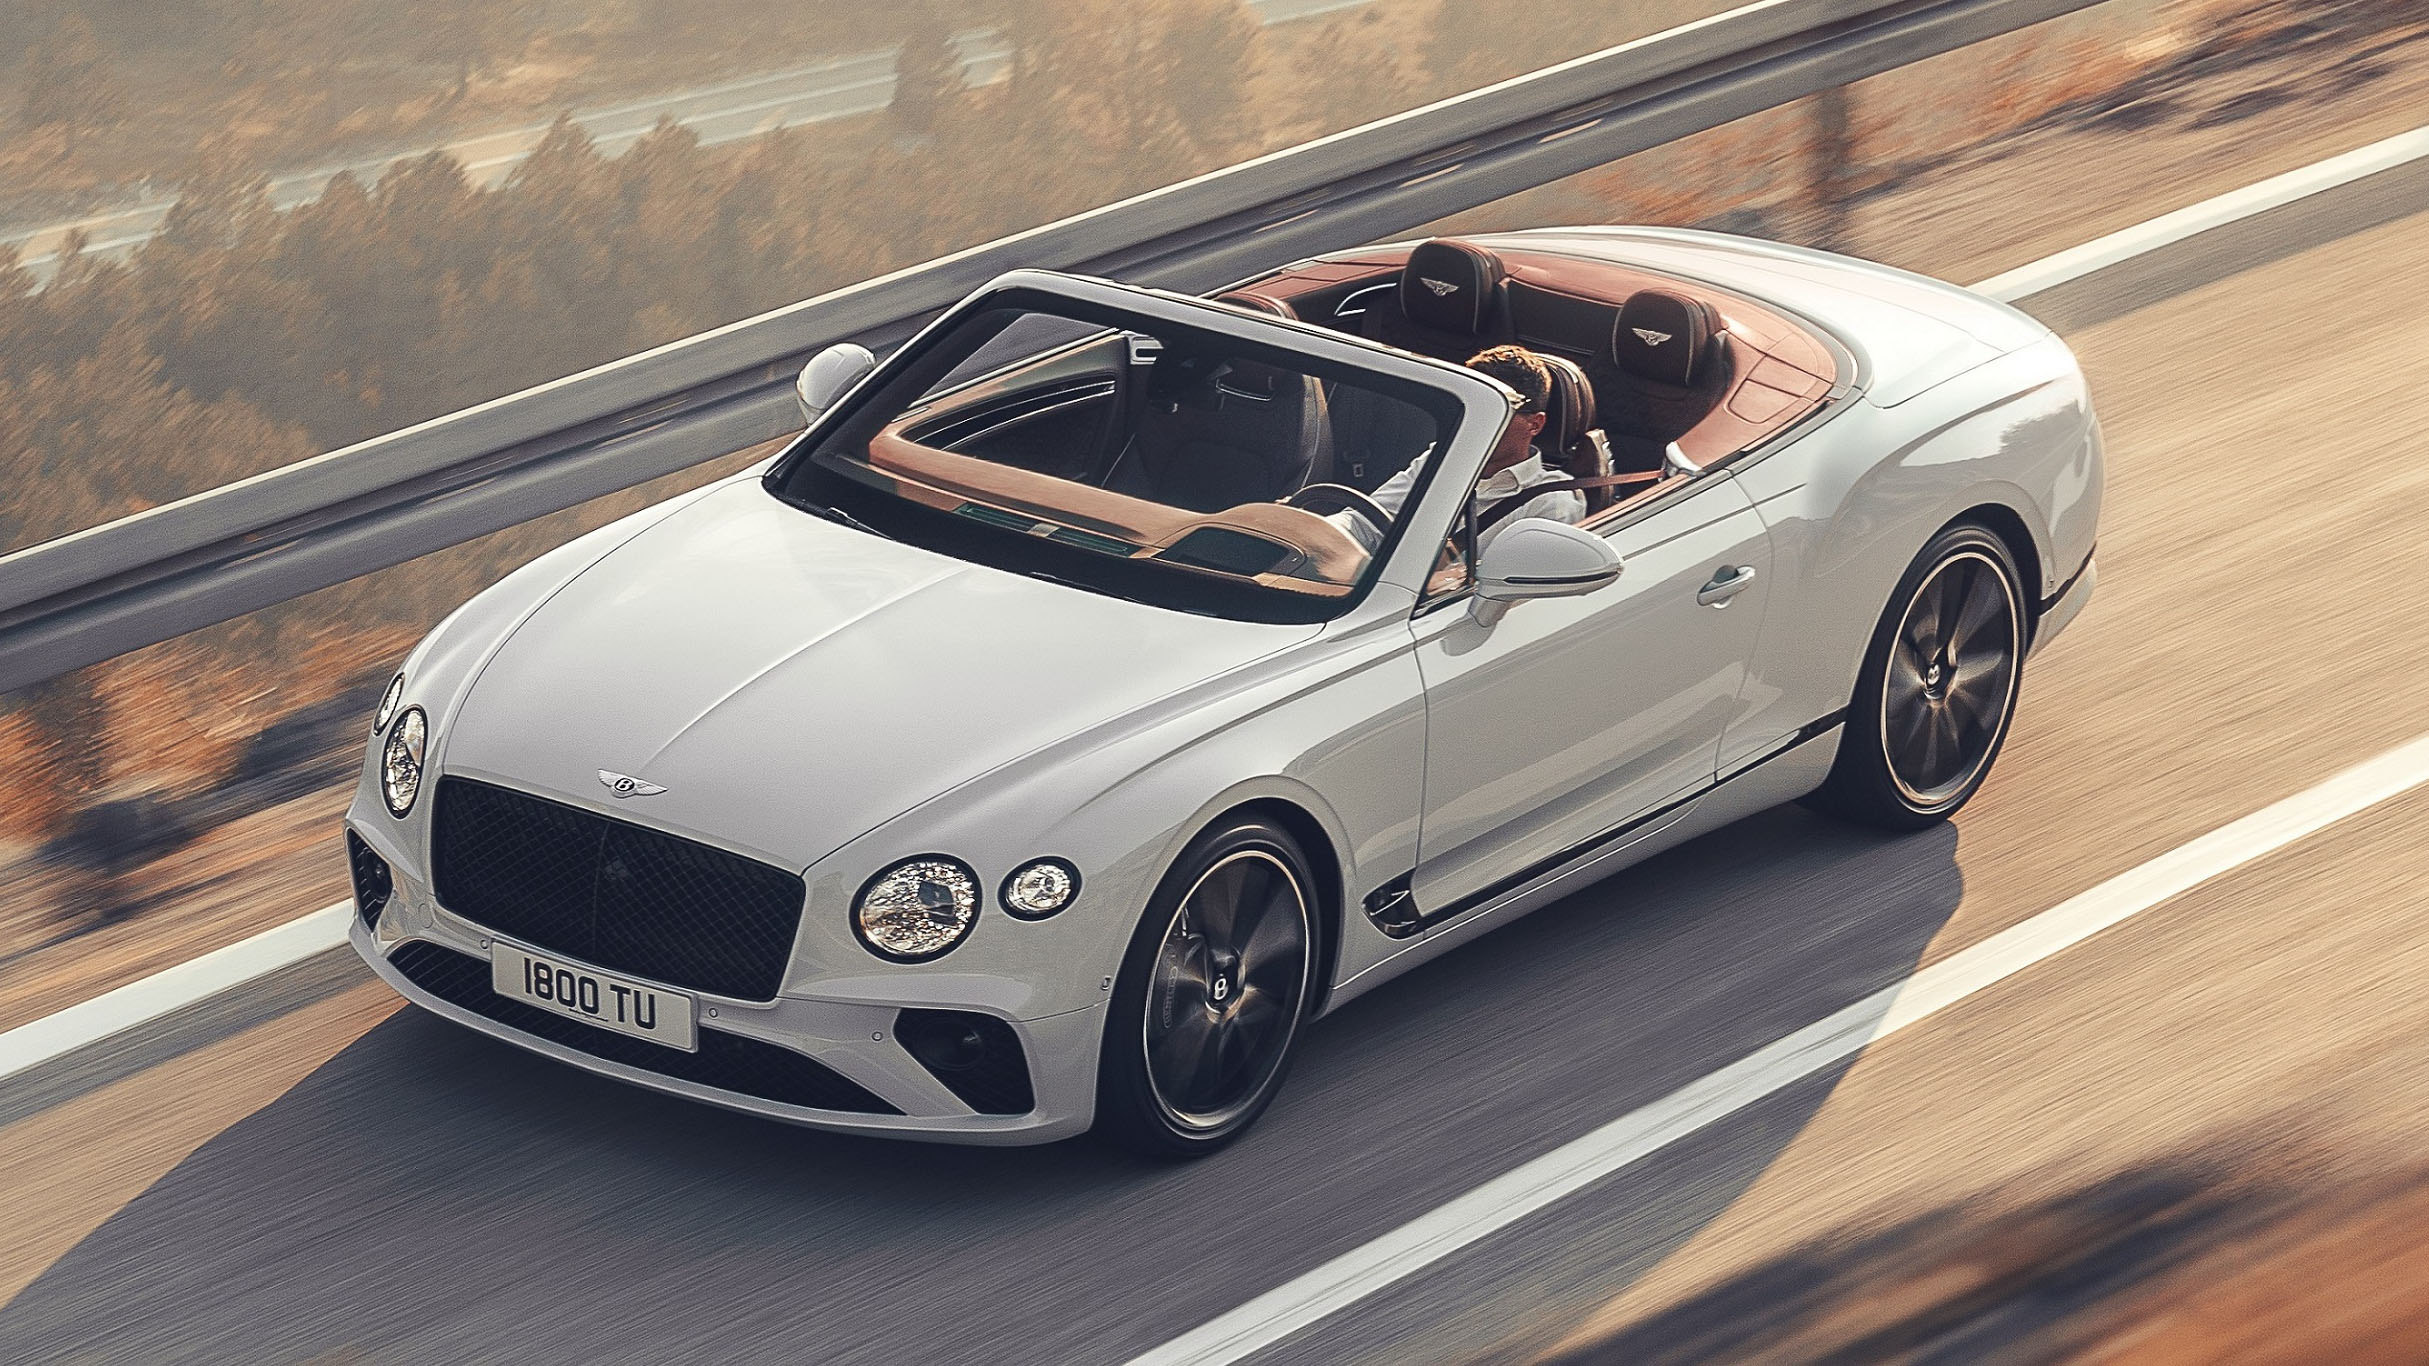 2019 Bentley Continental Gt Convertible Revealed Here In Q2 2019 Update Caradvice